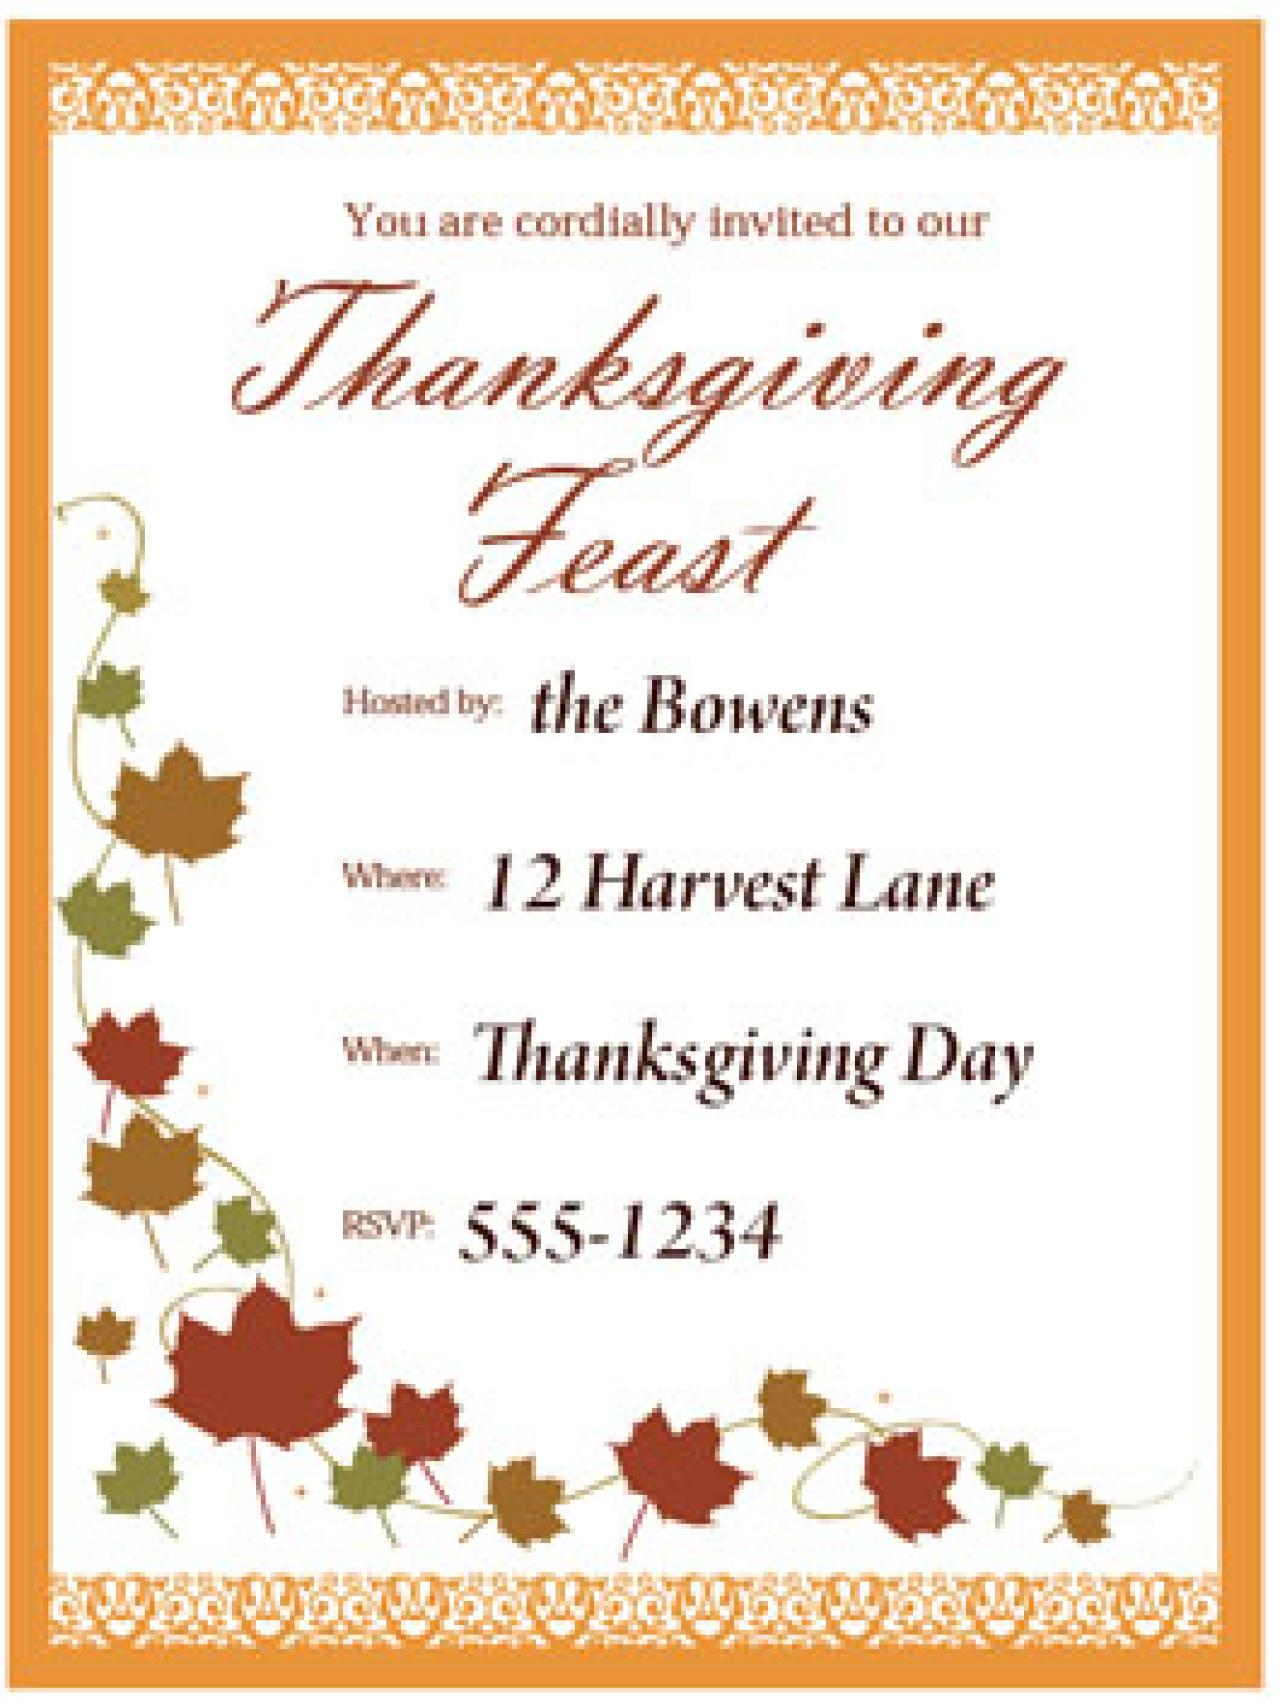 Print A Customizable Thanksgiving Invite From HGTV HGTV - Thanksgiving party invitation templates